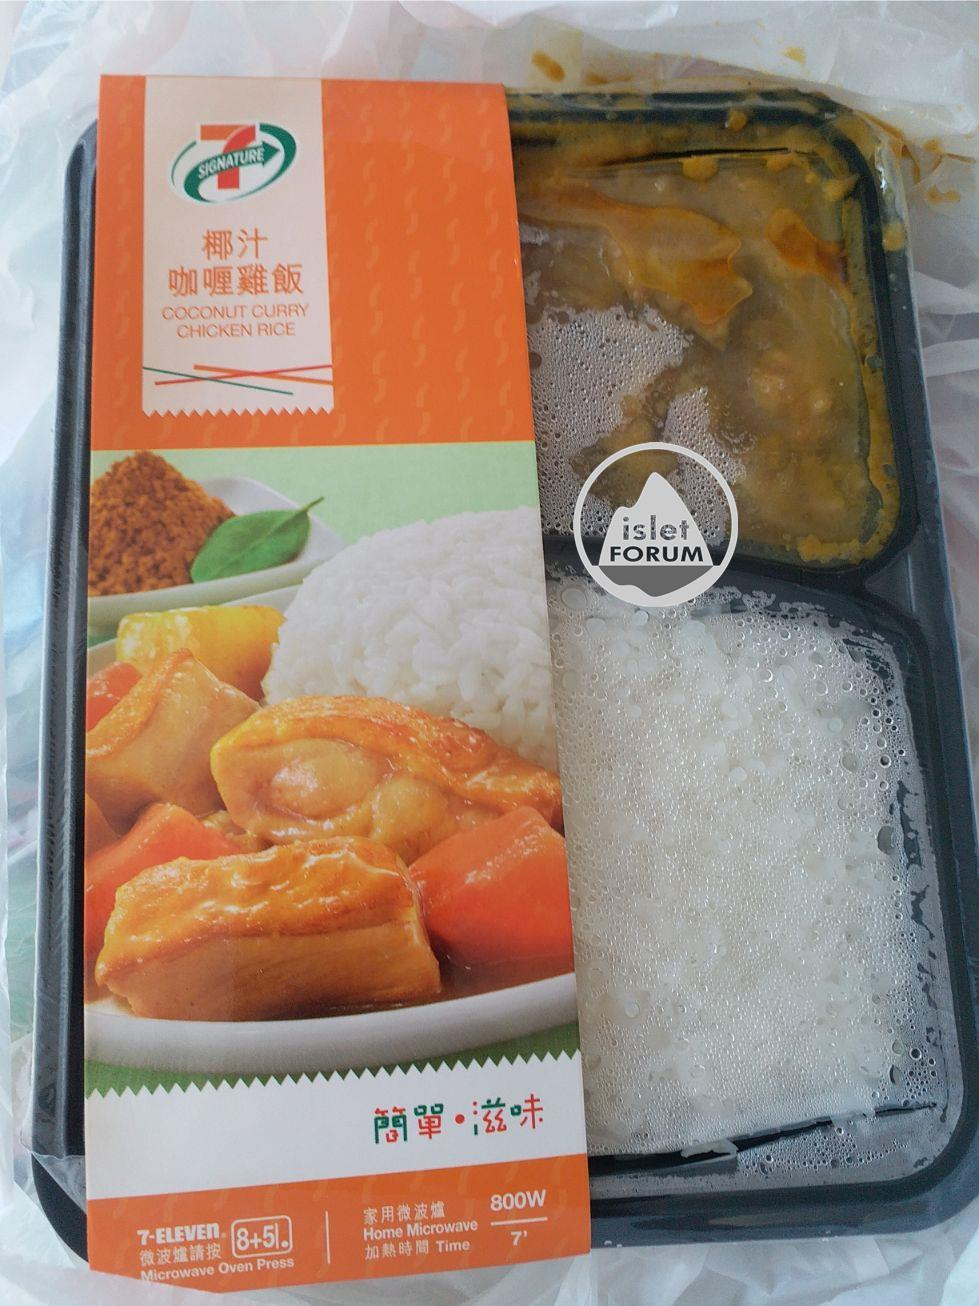 [7 Eleven]咖喱雞飯curry chicken rice (2).jpg